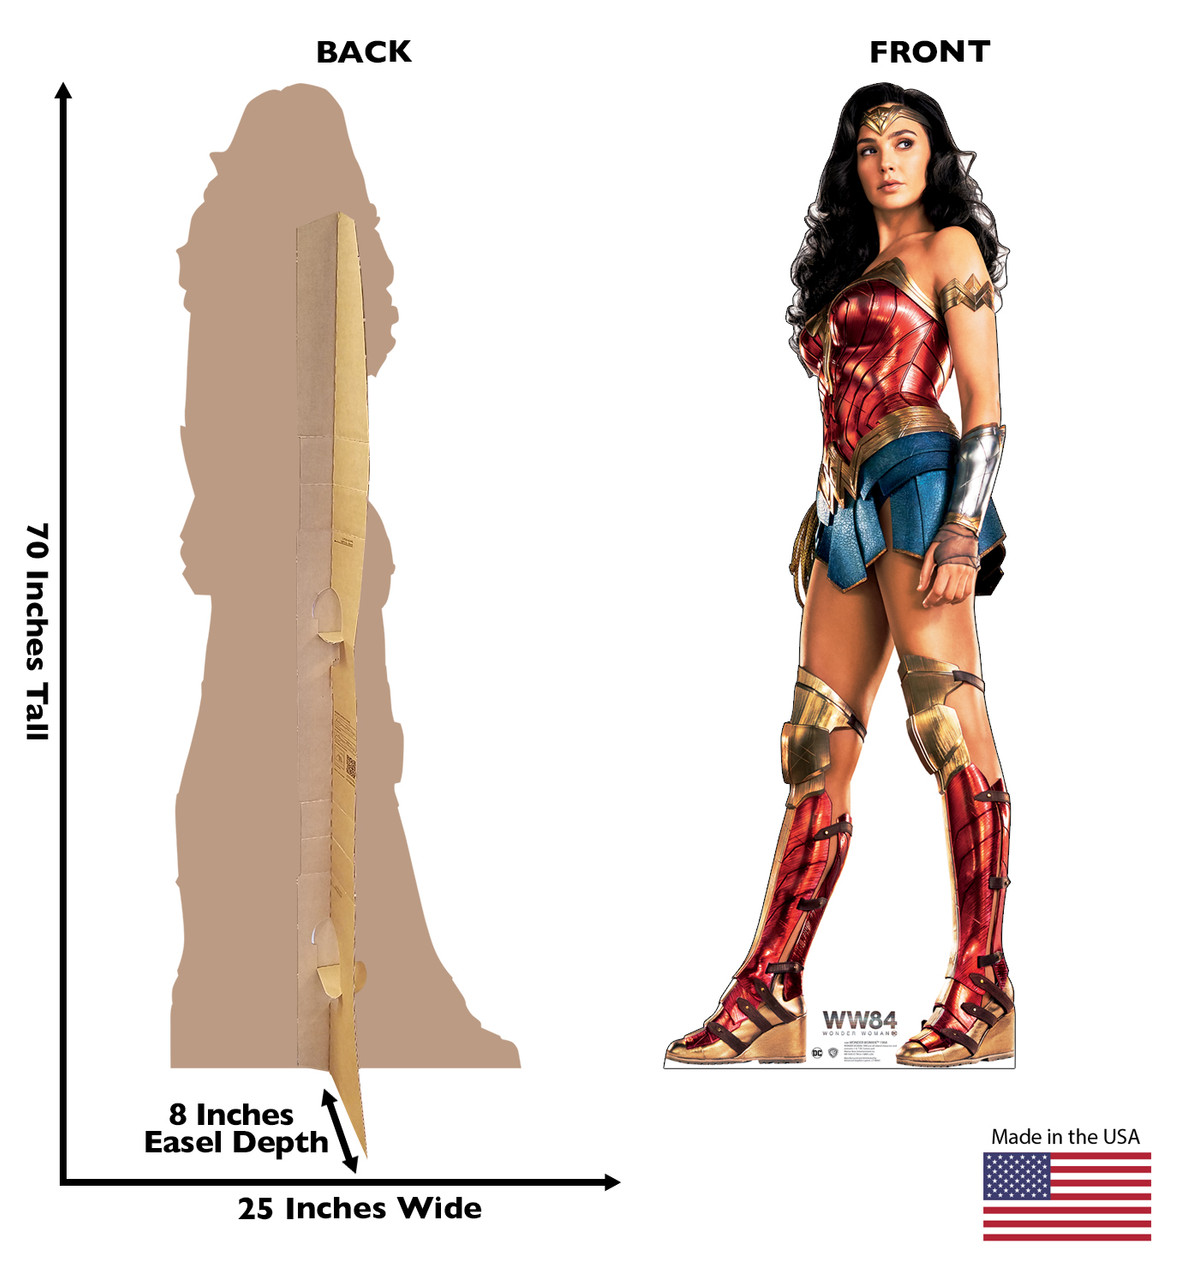 Wonder Woman 1984 cardboard standee with front and back dimensions.